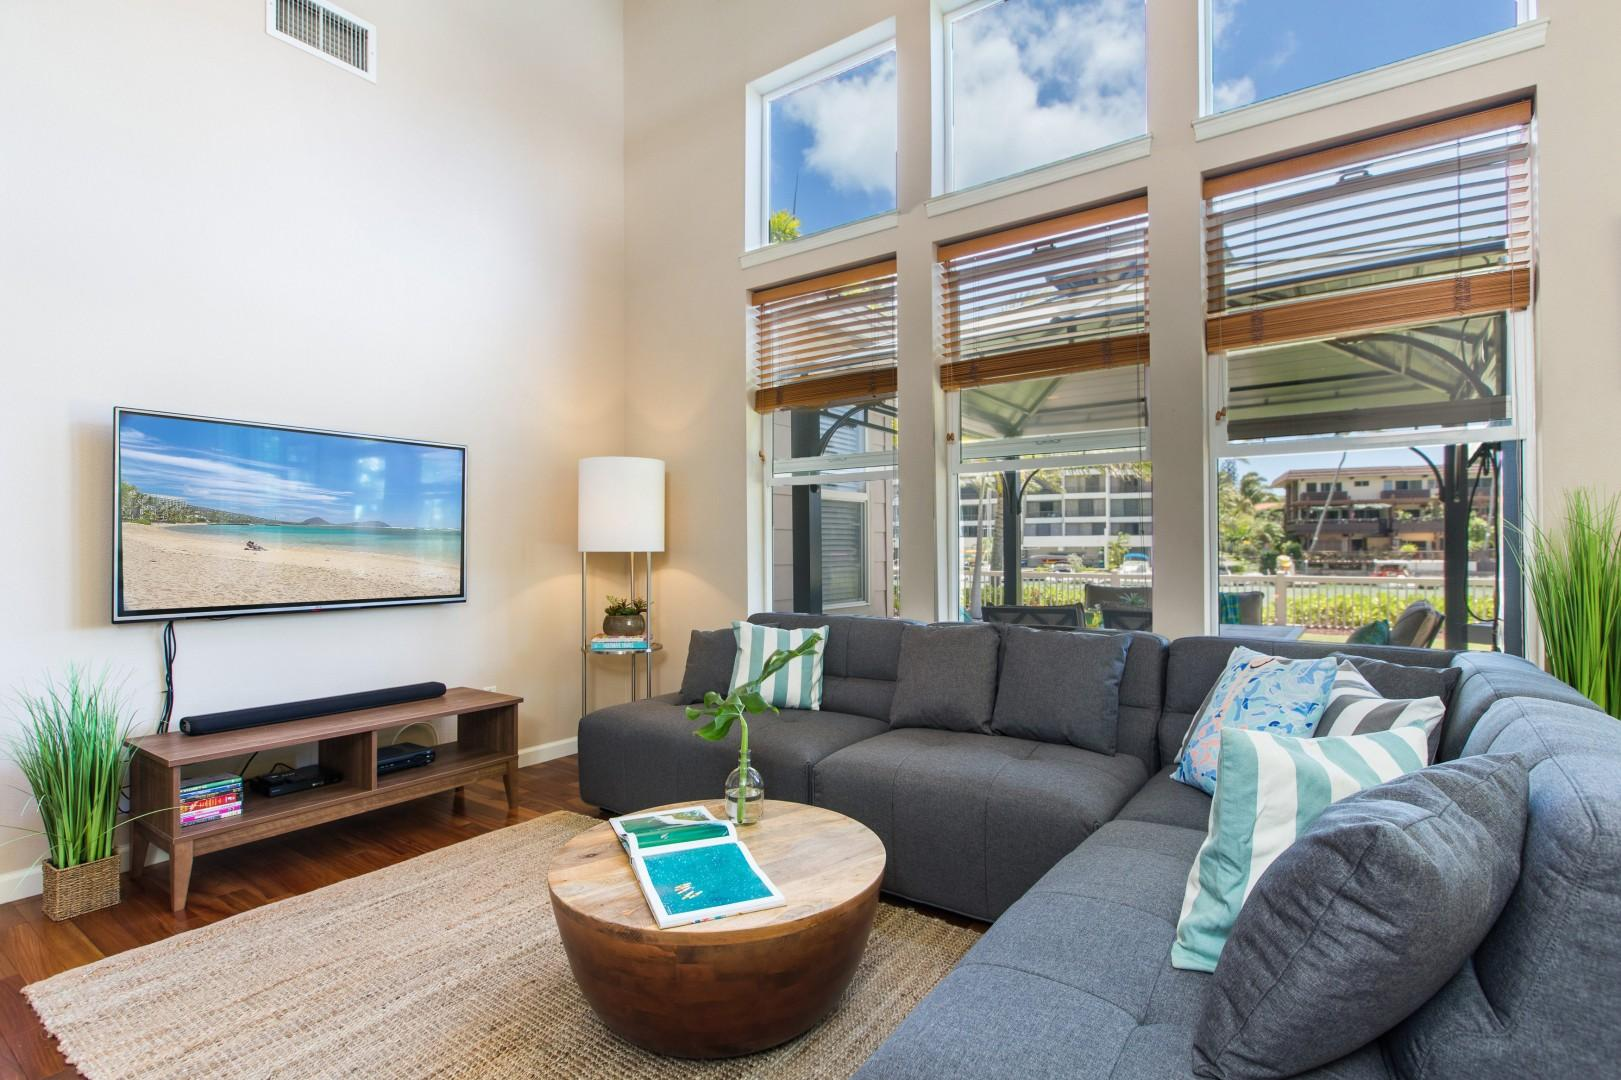 Kick back and relax at Ohana Kai, where you have a large, family-size couch, beautiful wood flooring, full air conditioning, and of course wireless internet.